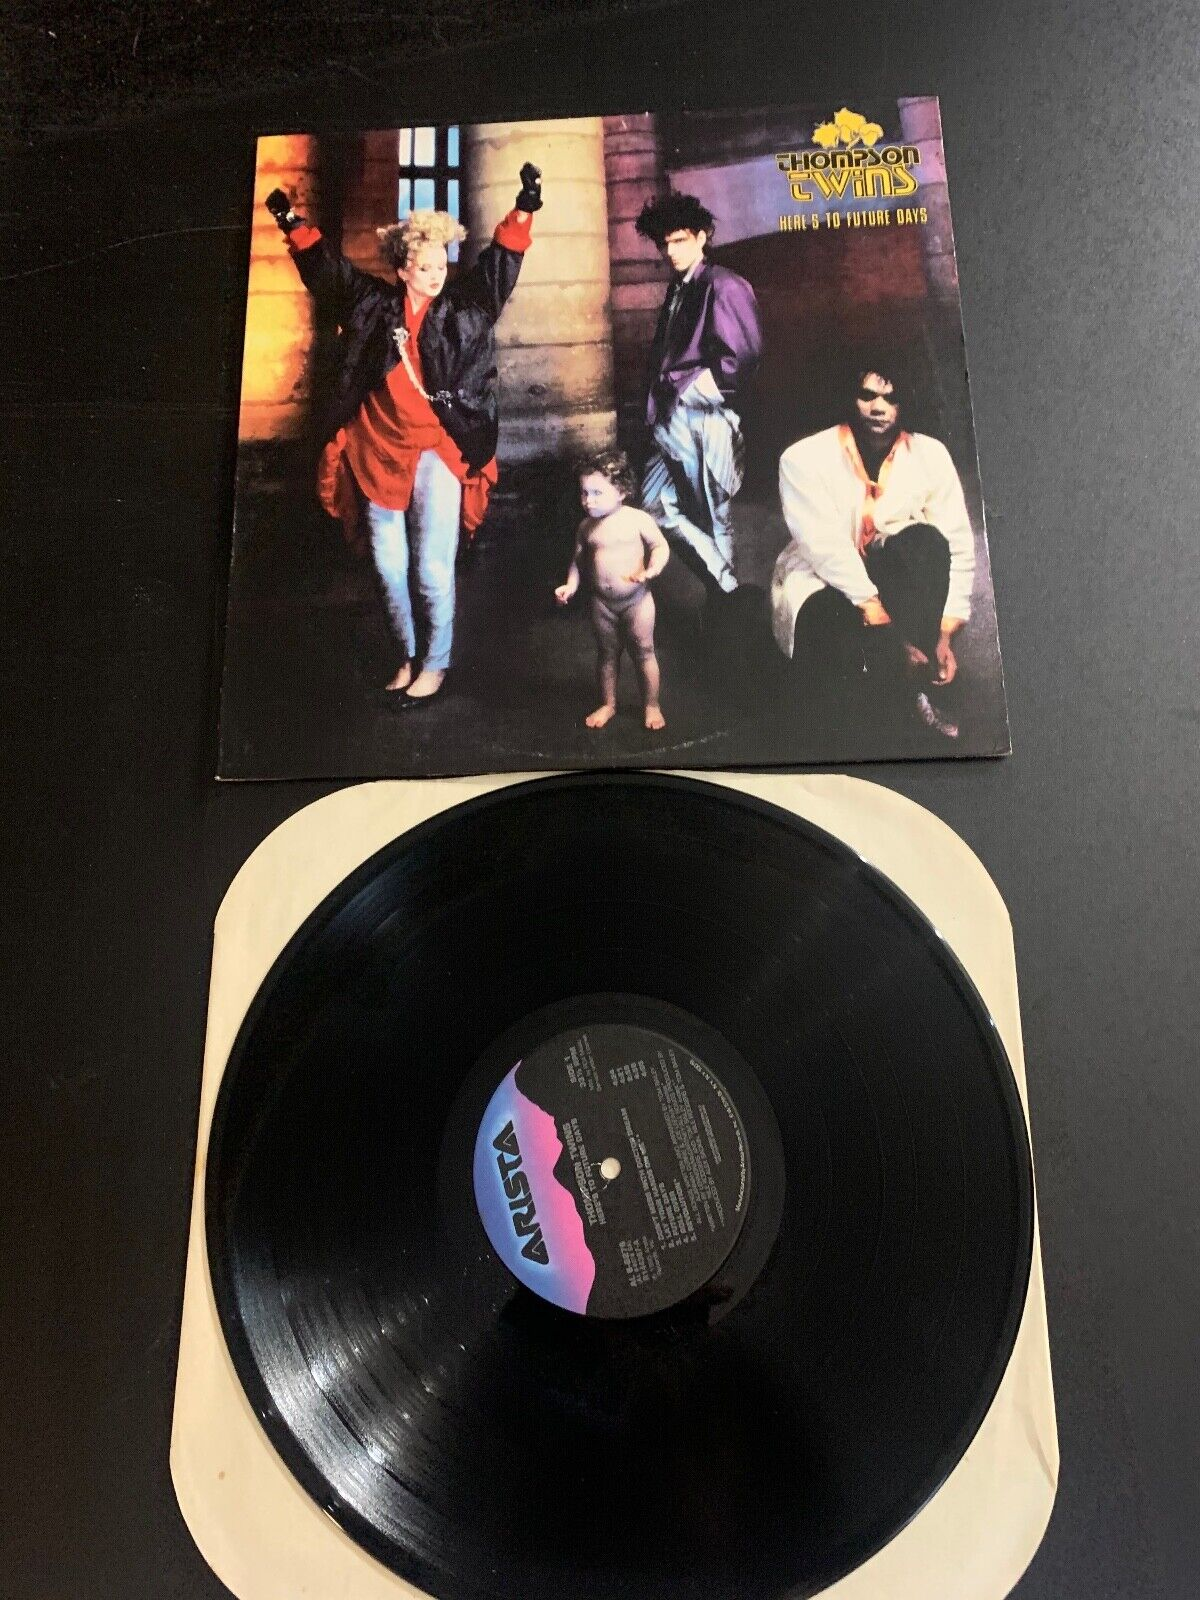 LP RECORD - THOMPSON TWINS - HERE S TO FUTURE DAYS - ARISTA RECORDS - $9.99